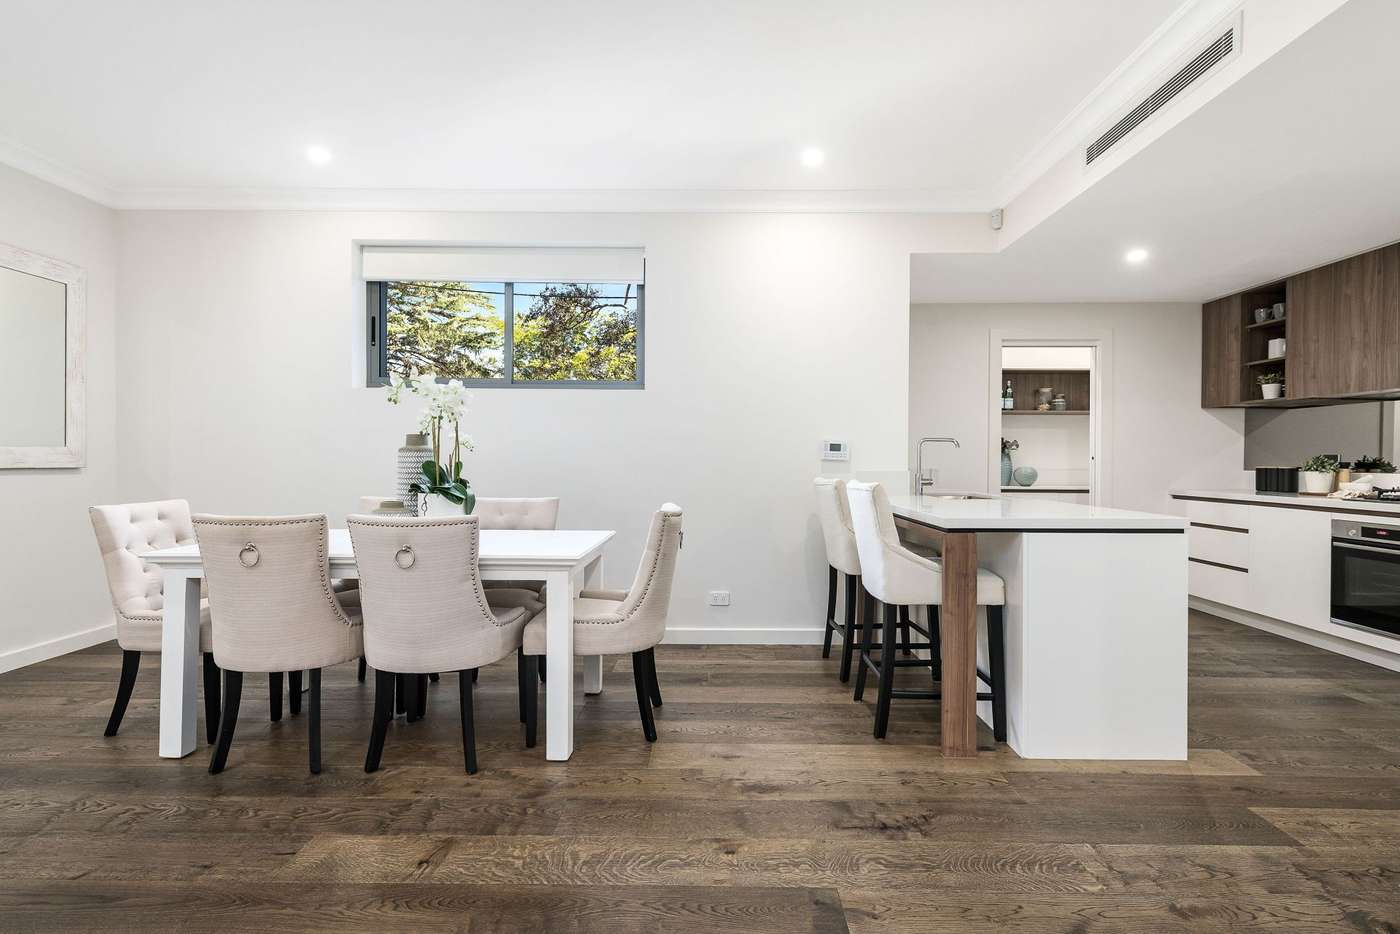 Main view of Homely townhouse listing, 10-1 10-12 Newhaven Place, St Ives NSW 2075